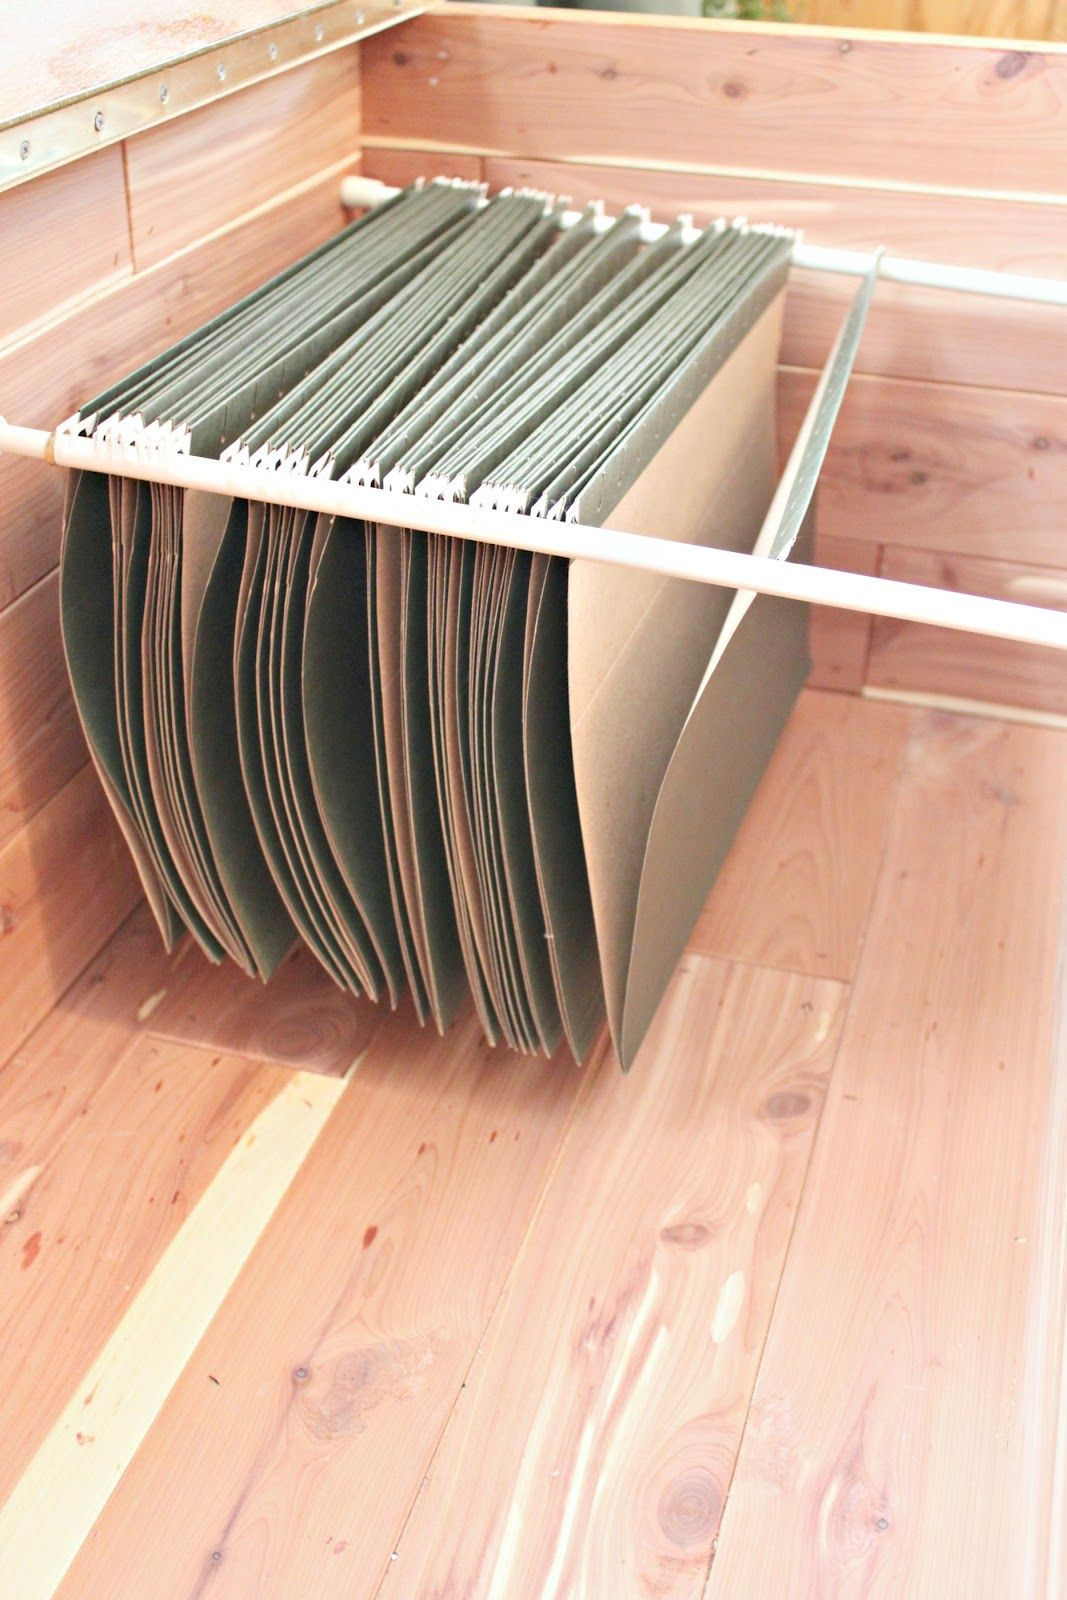 Elegant Use Tension Rods To Create Filing Space In Trunks, Deep Drawers Etc (great  Idea)